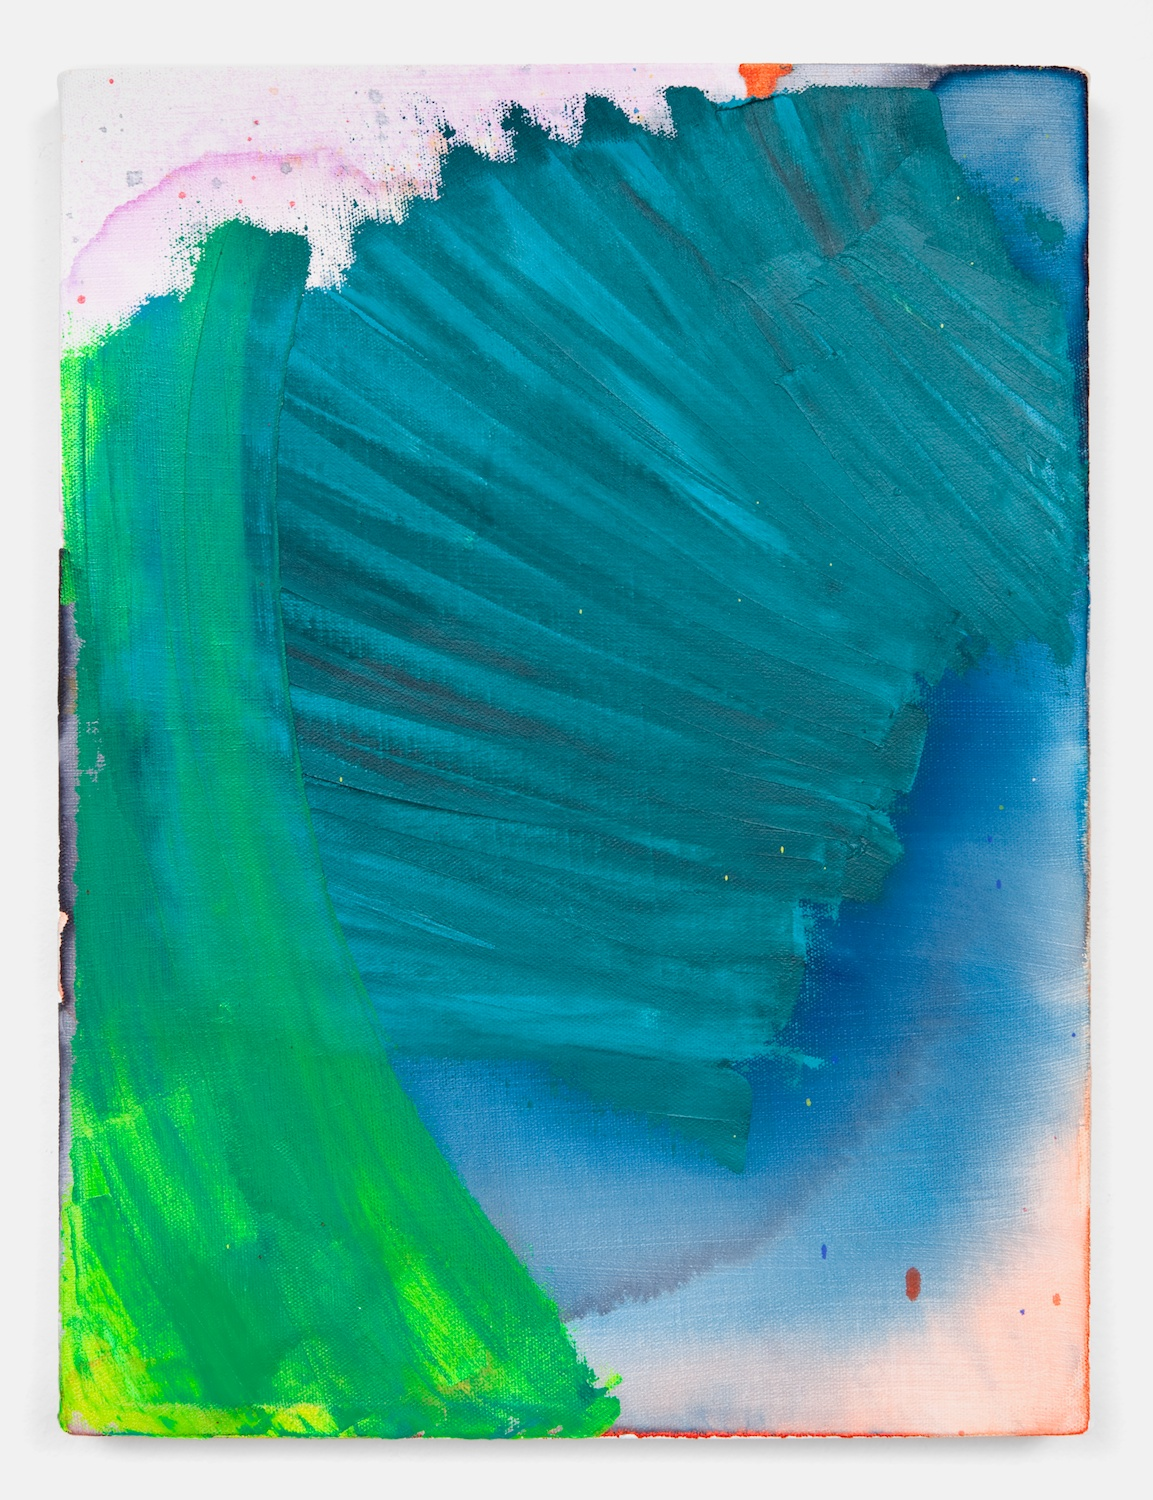 Joanne Greenbaum  Untitled  2011 Oil, acrylic and mixed media on linen 16h x 12w in JG045